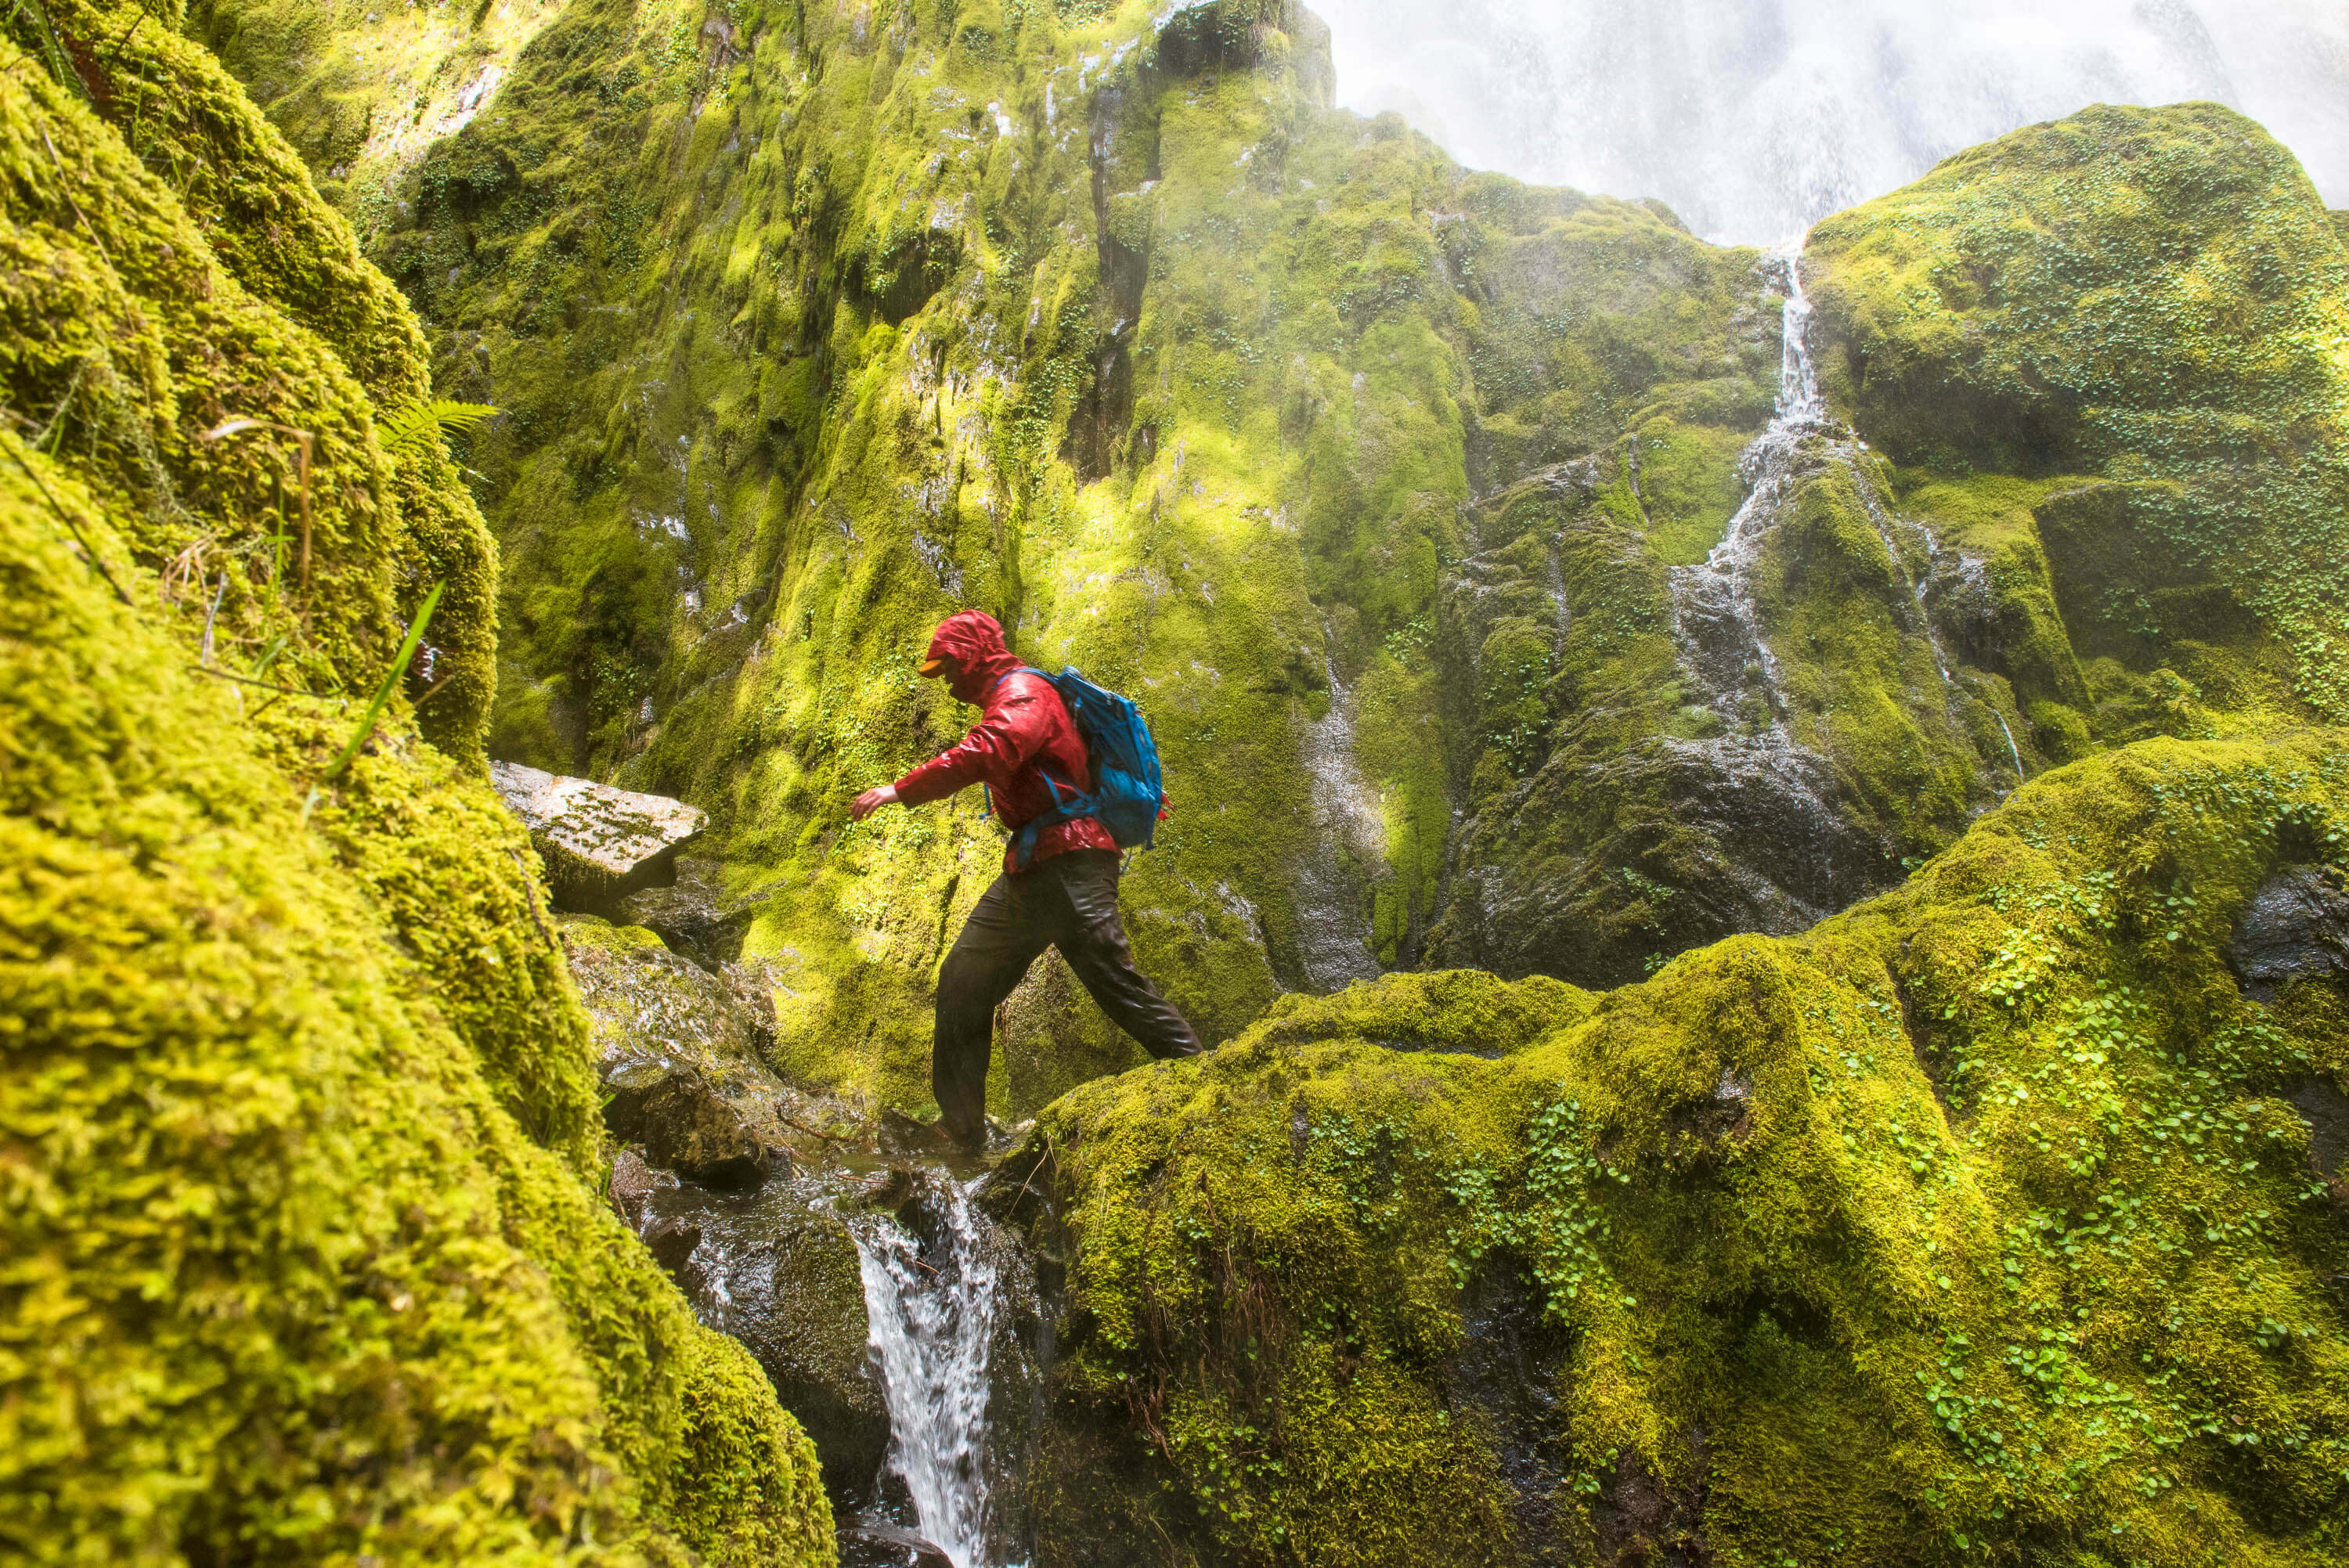 Waterfall spray, moss covered rocks and Lief on a micro adventure